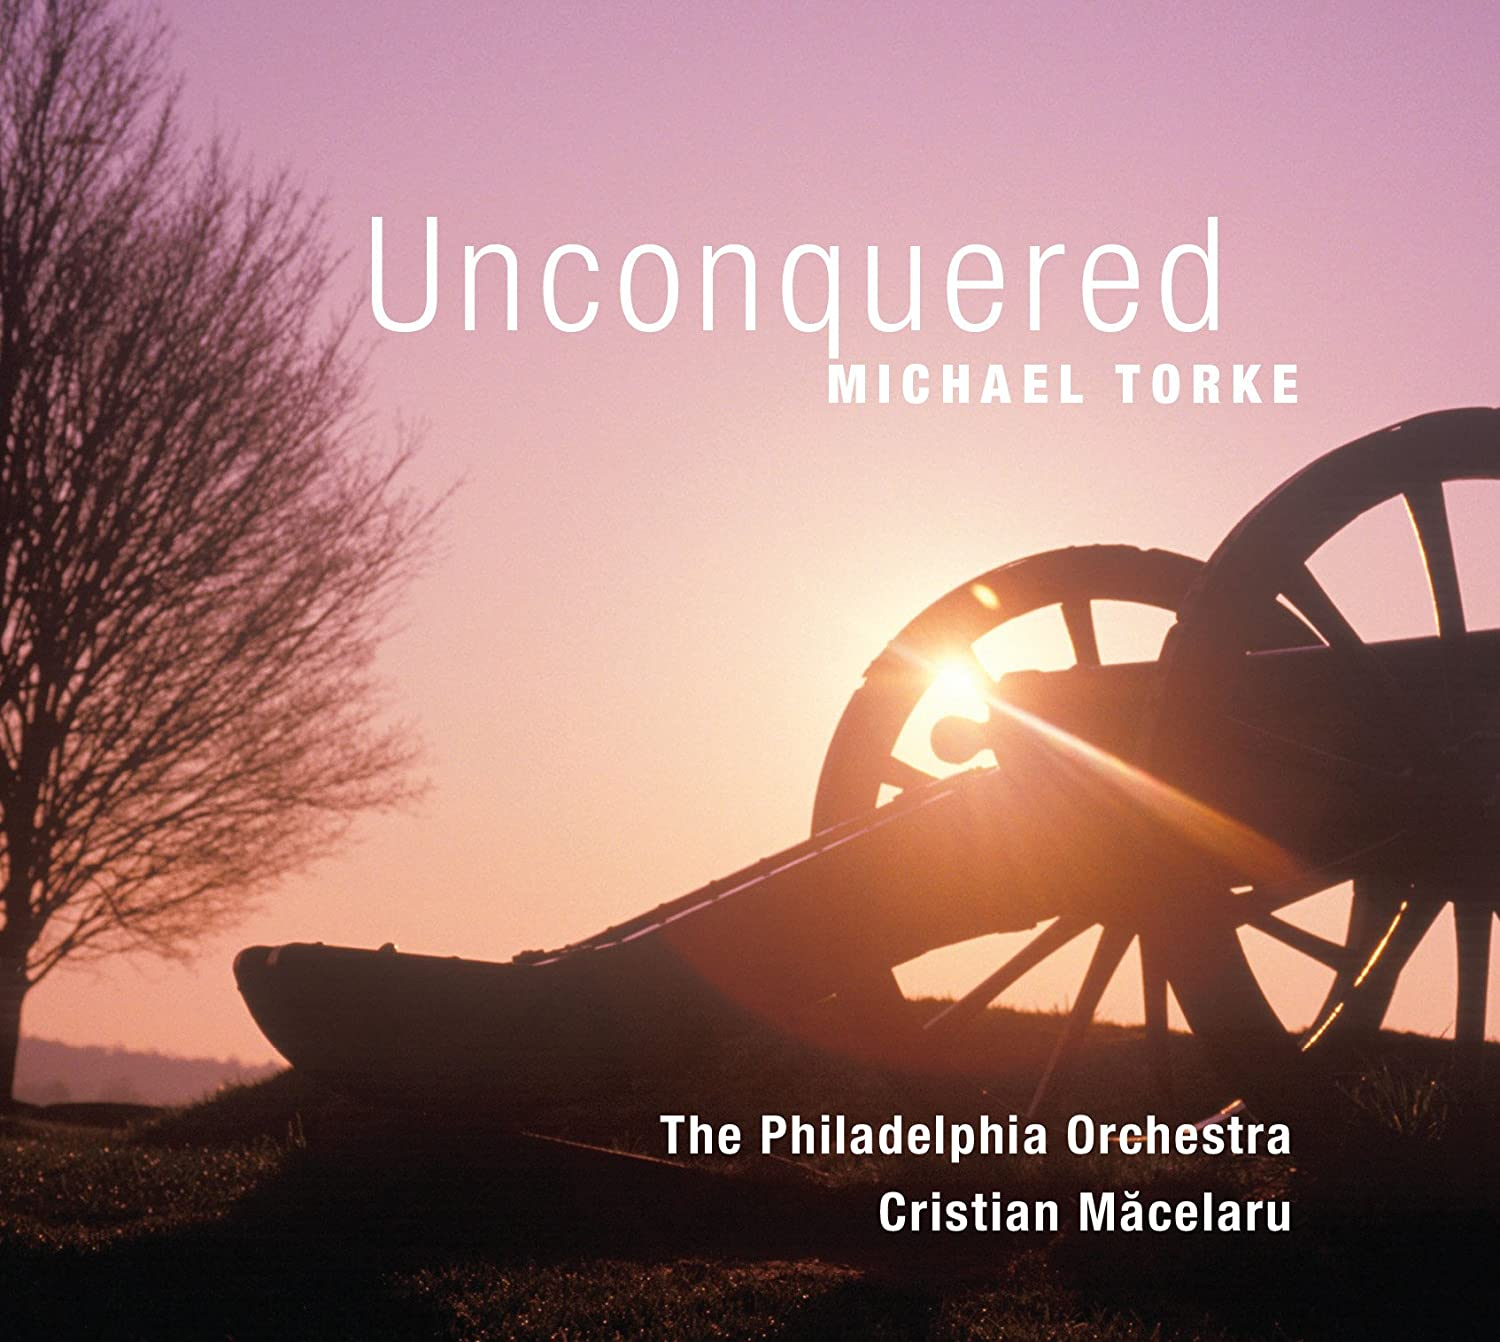 The Philadelphia Orchestra - Torke: Unconquered - Amazon.com Music